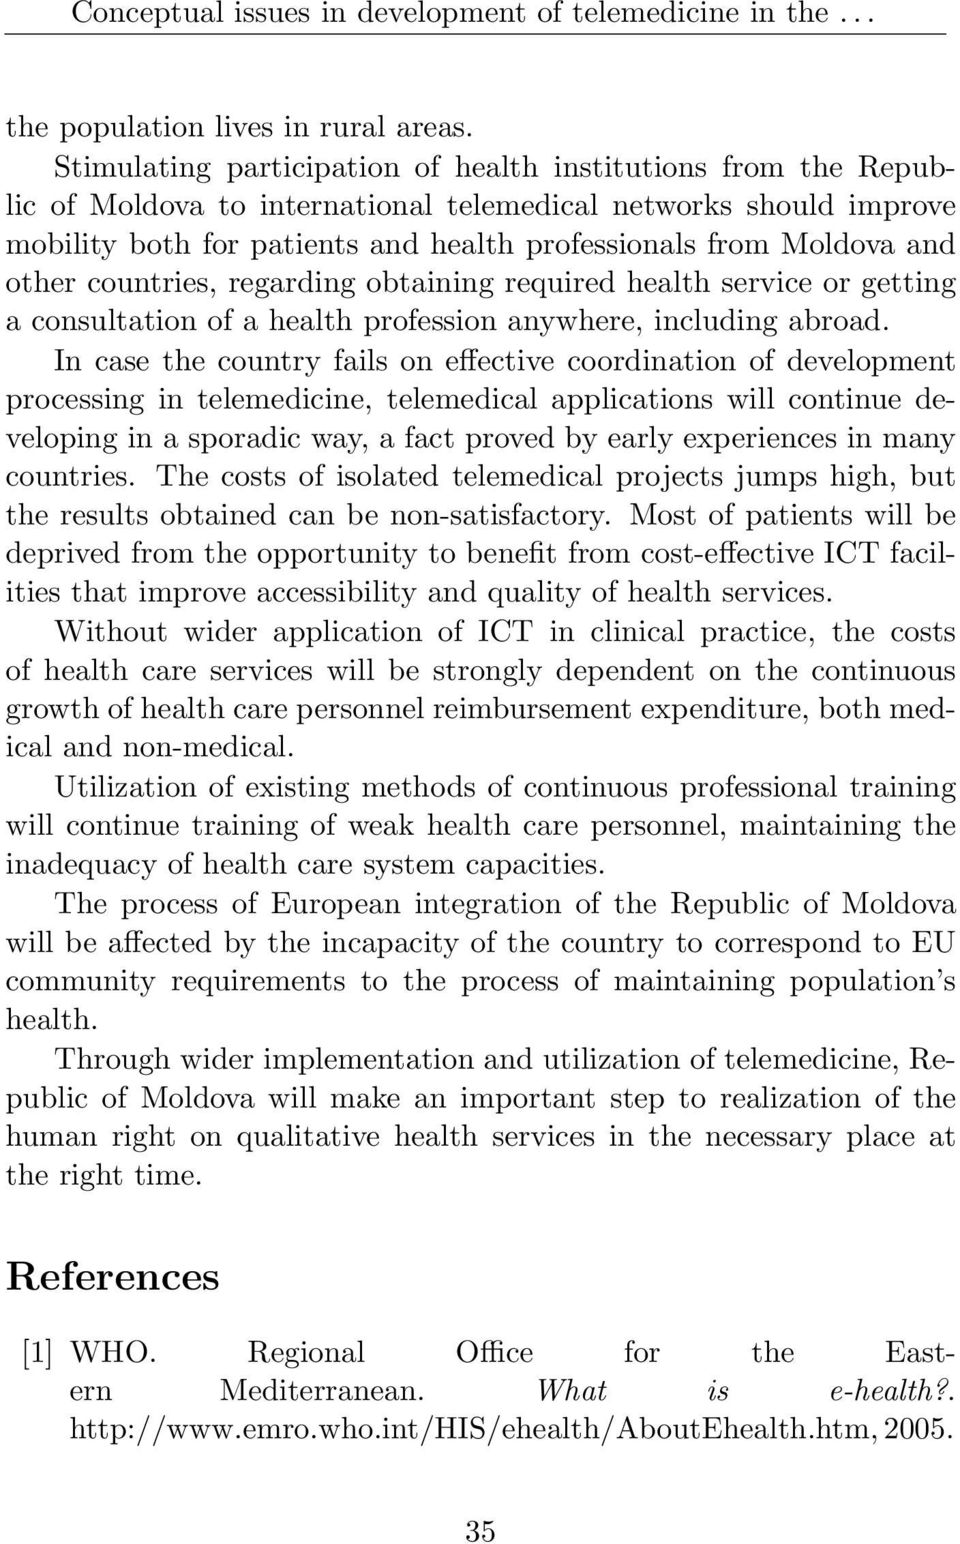 other countries, regarding obtaining required health service or getting a consultation of a health profession anywhere, including abroad.